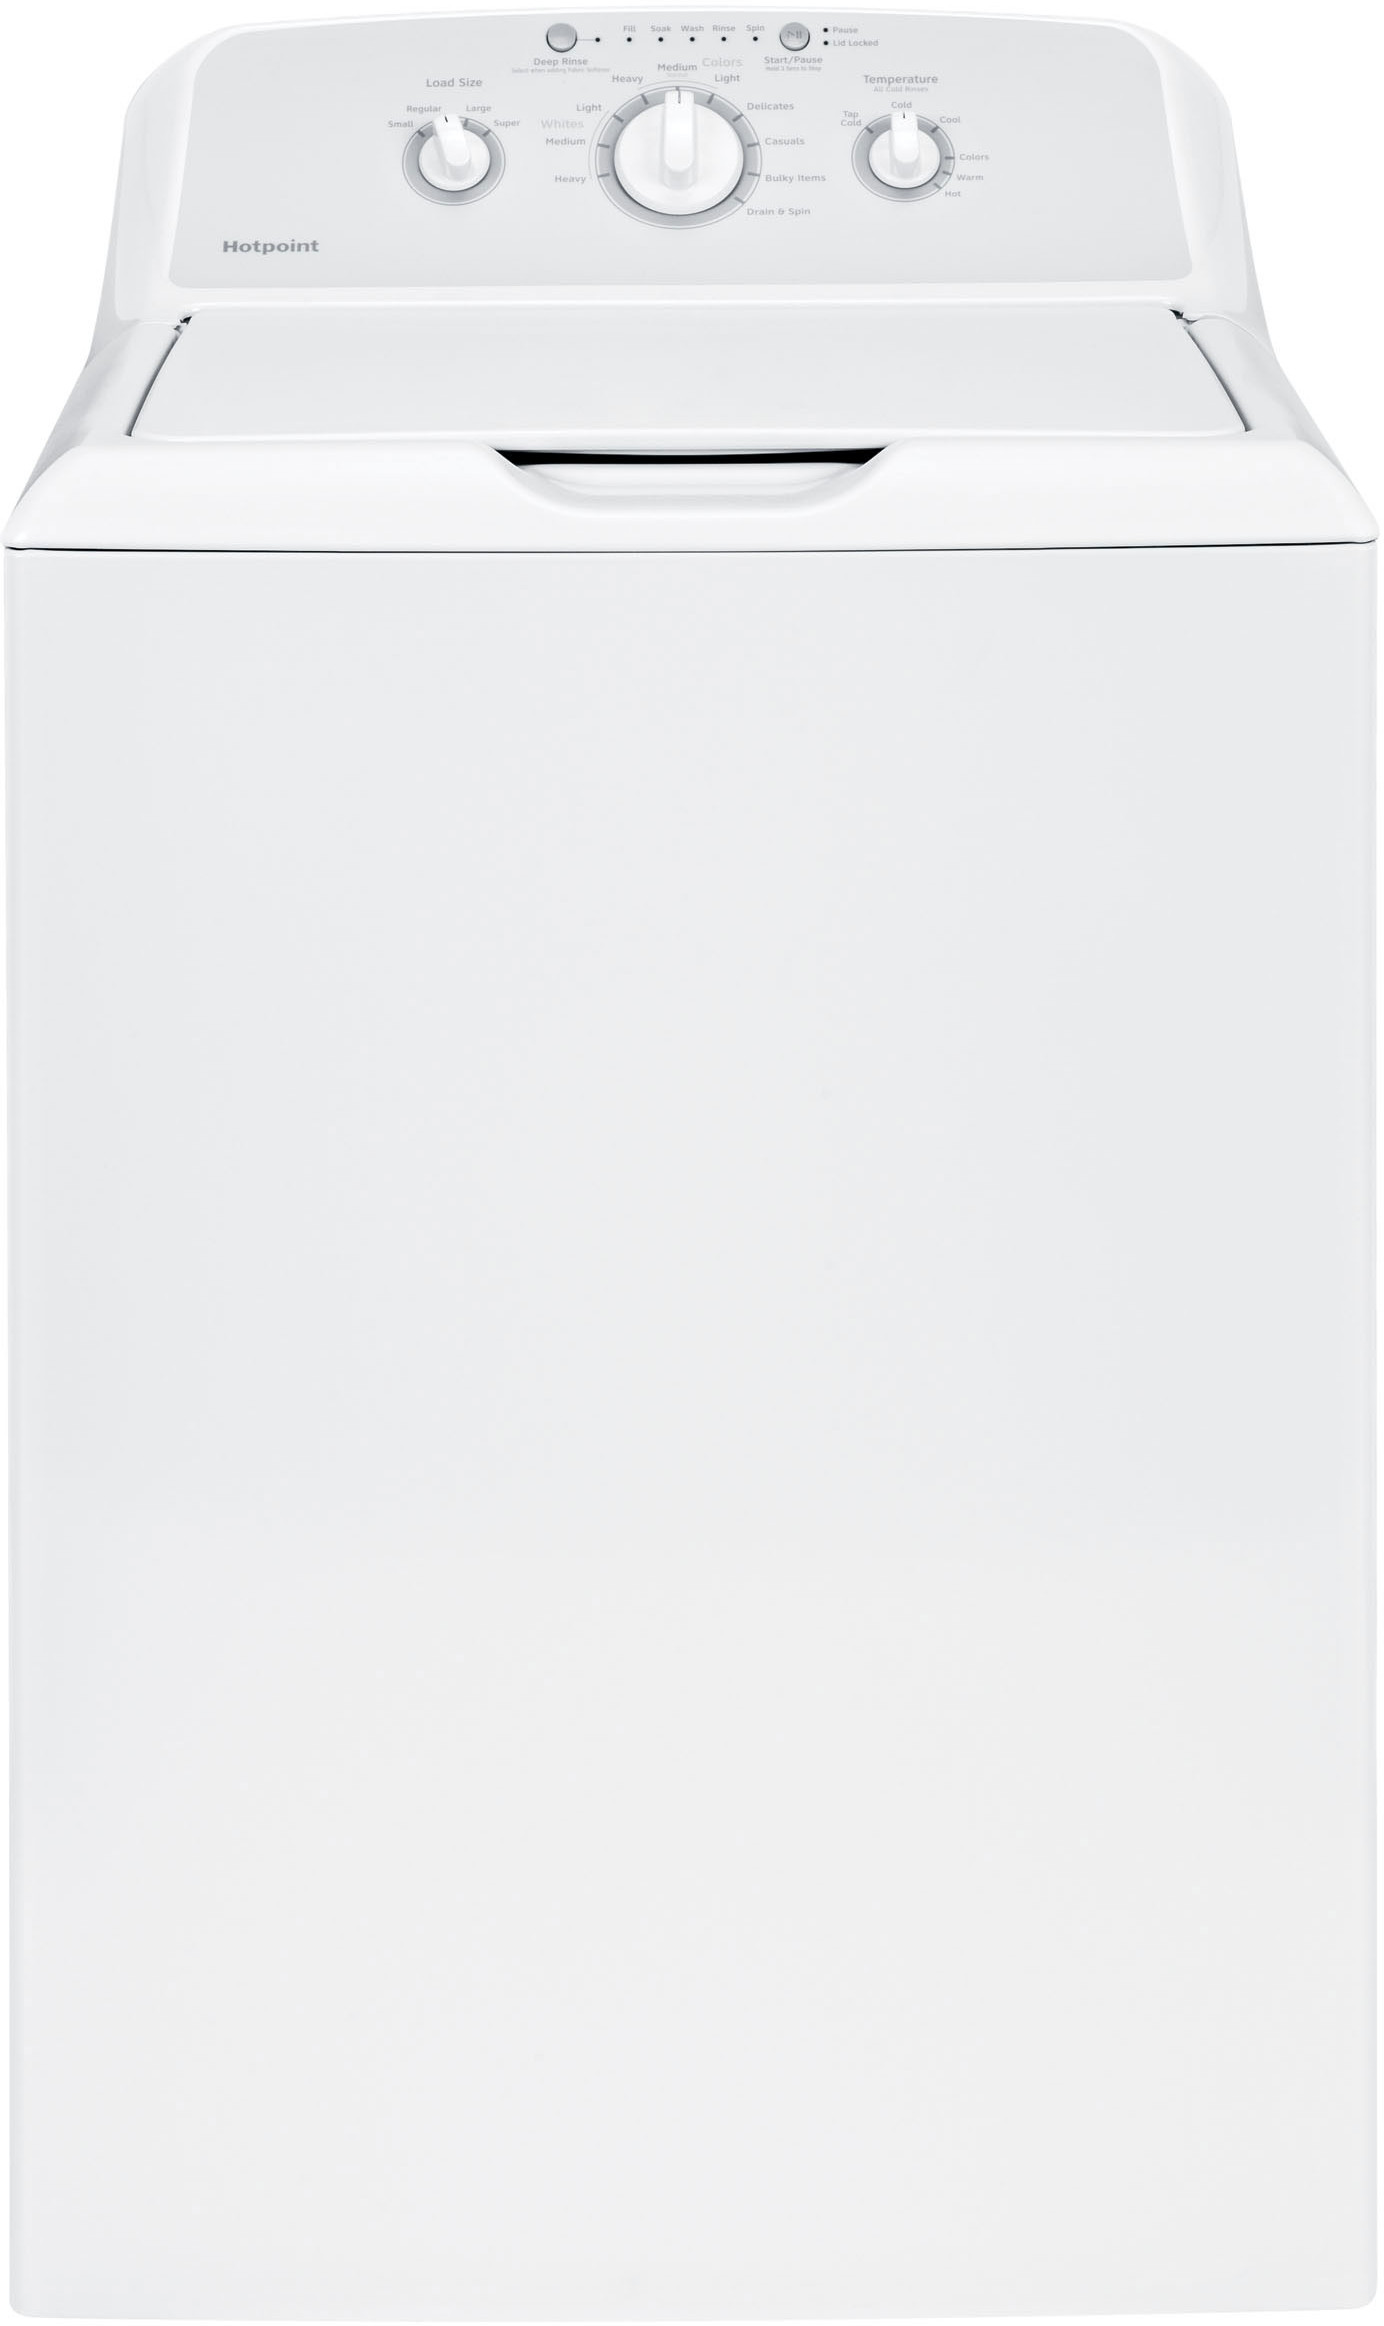 GE HTW240ASKWS 27 Inch Top Load Washer with 3.6 cu. ft